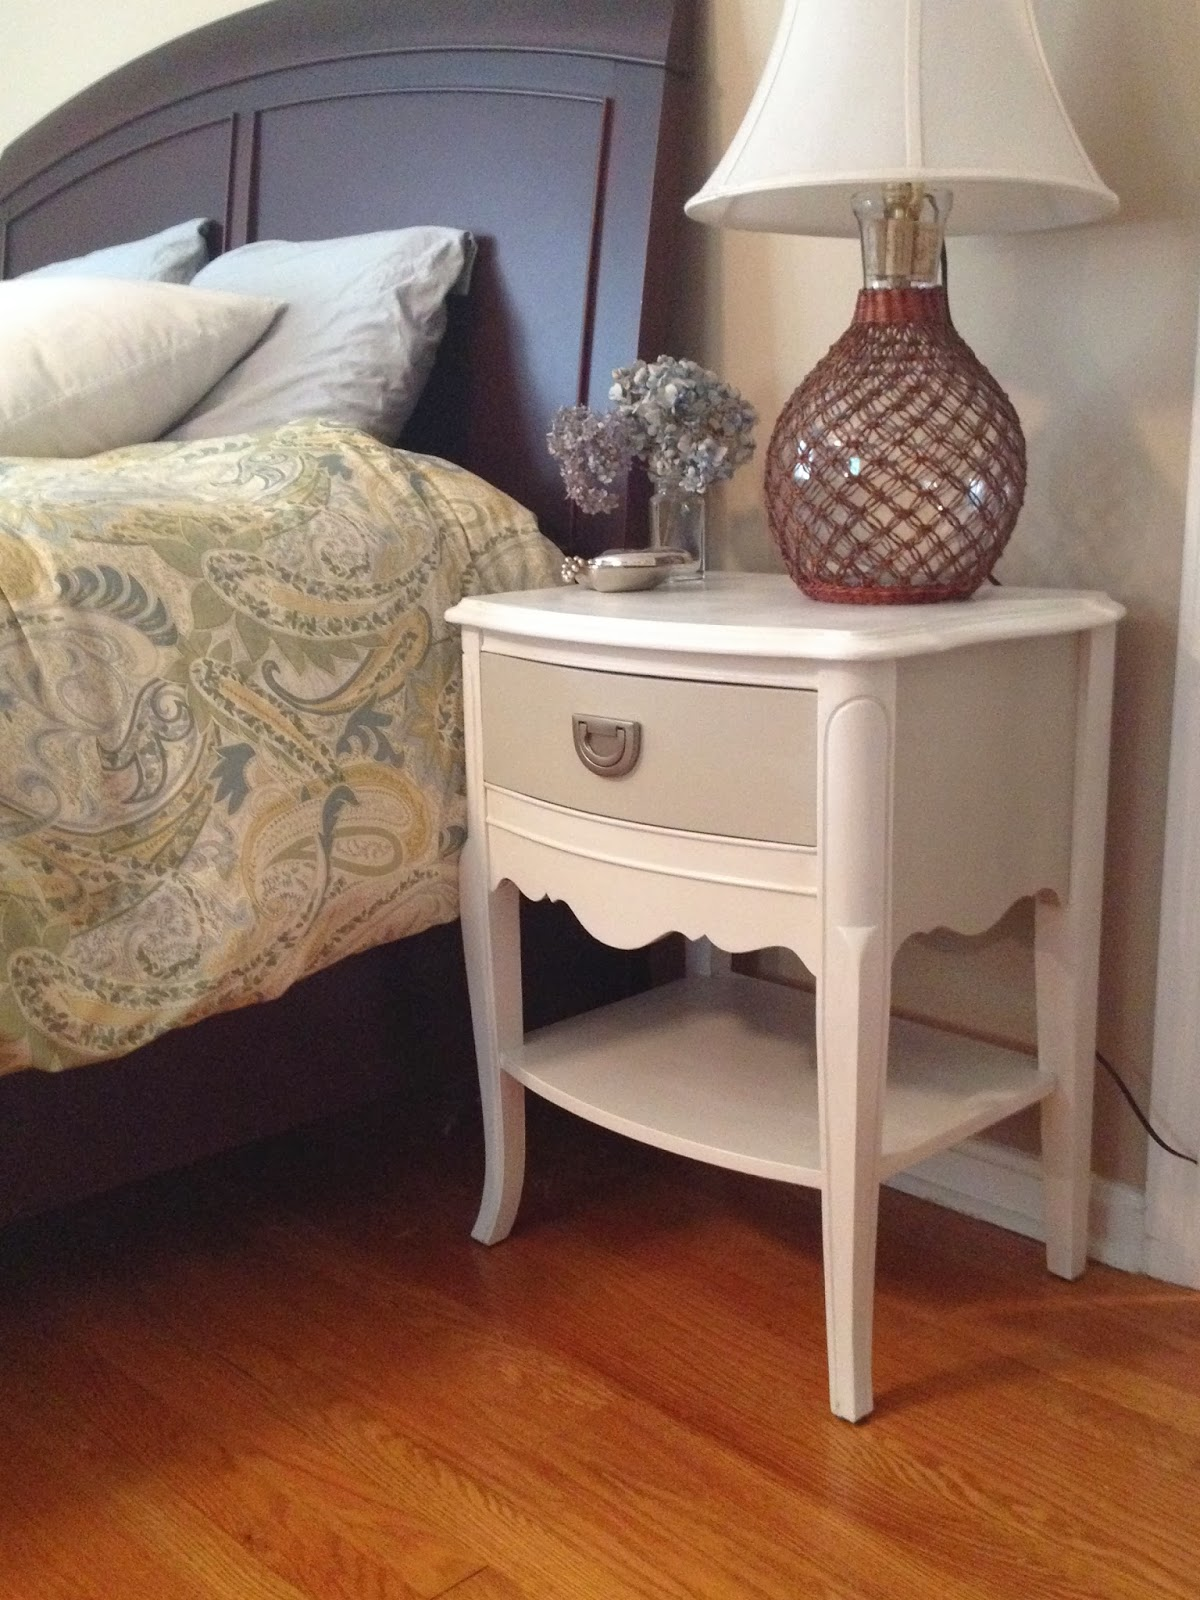 Repainted Furniture two it yourself: 9 tips for selling painted & re-finished furniture